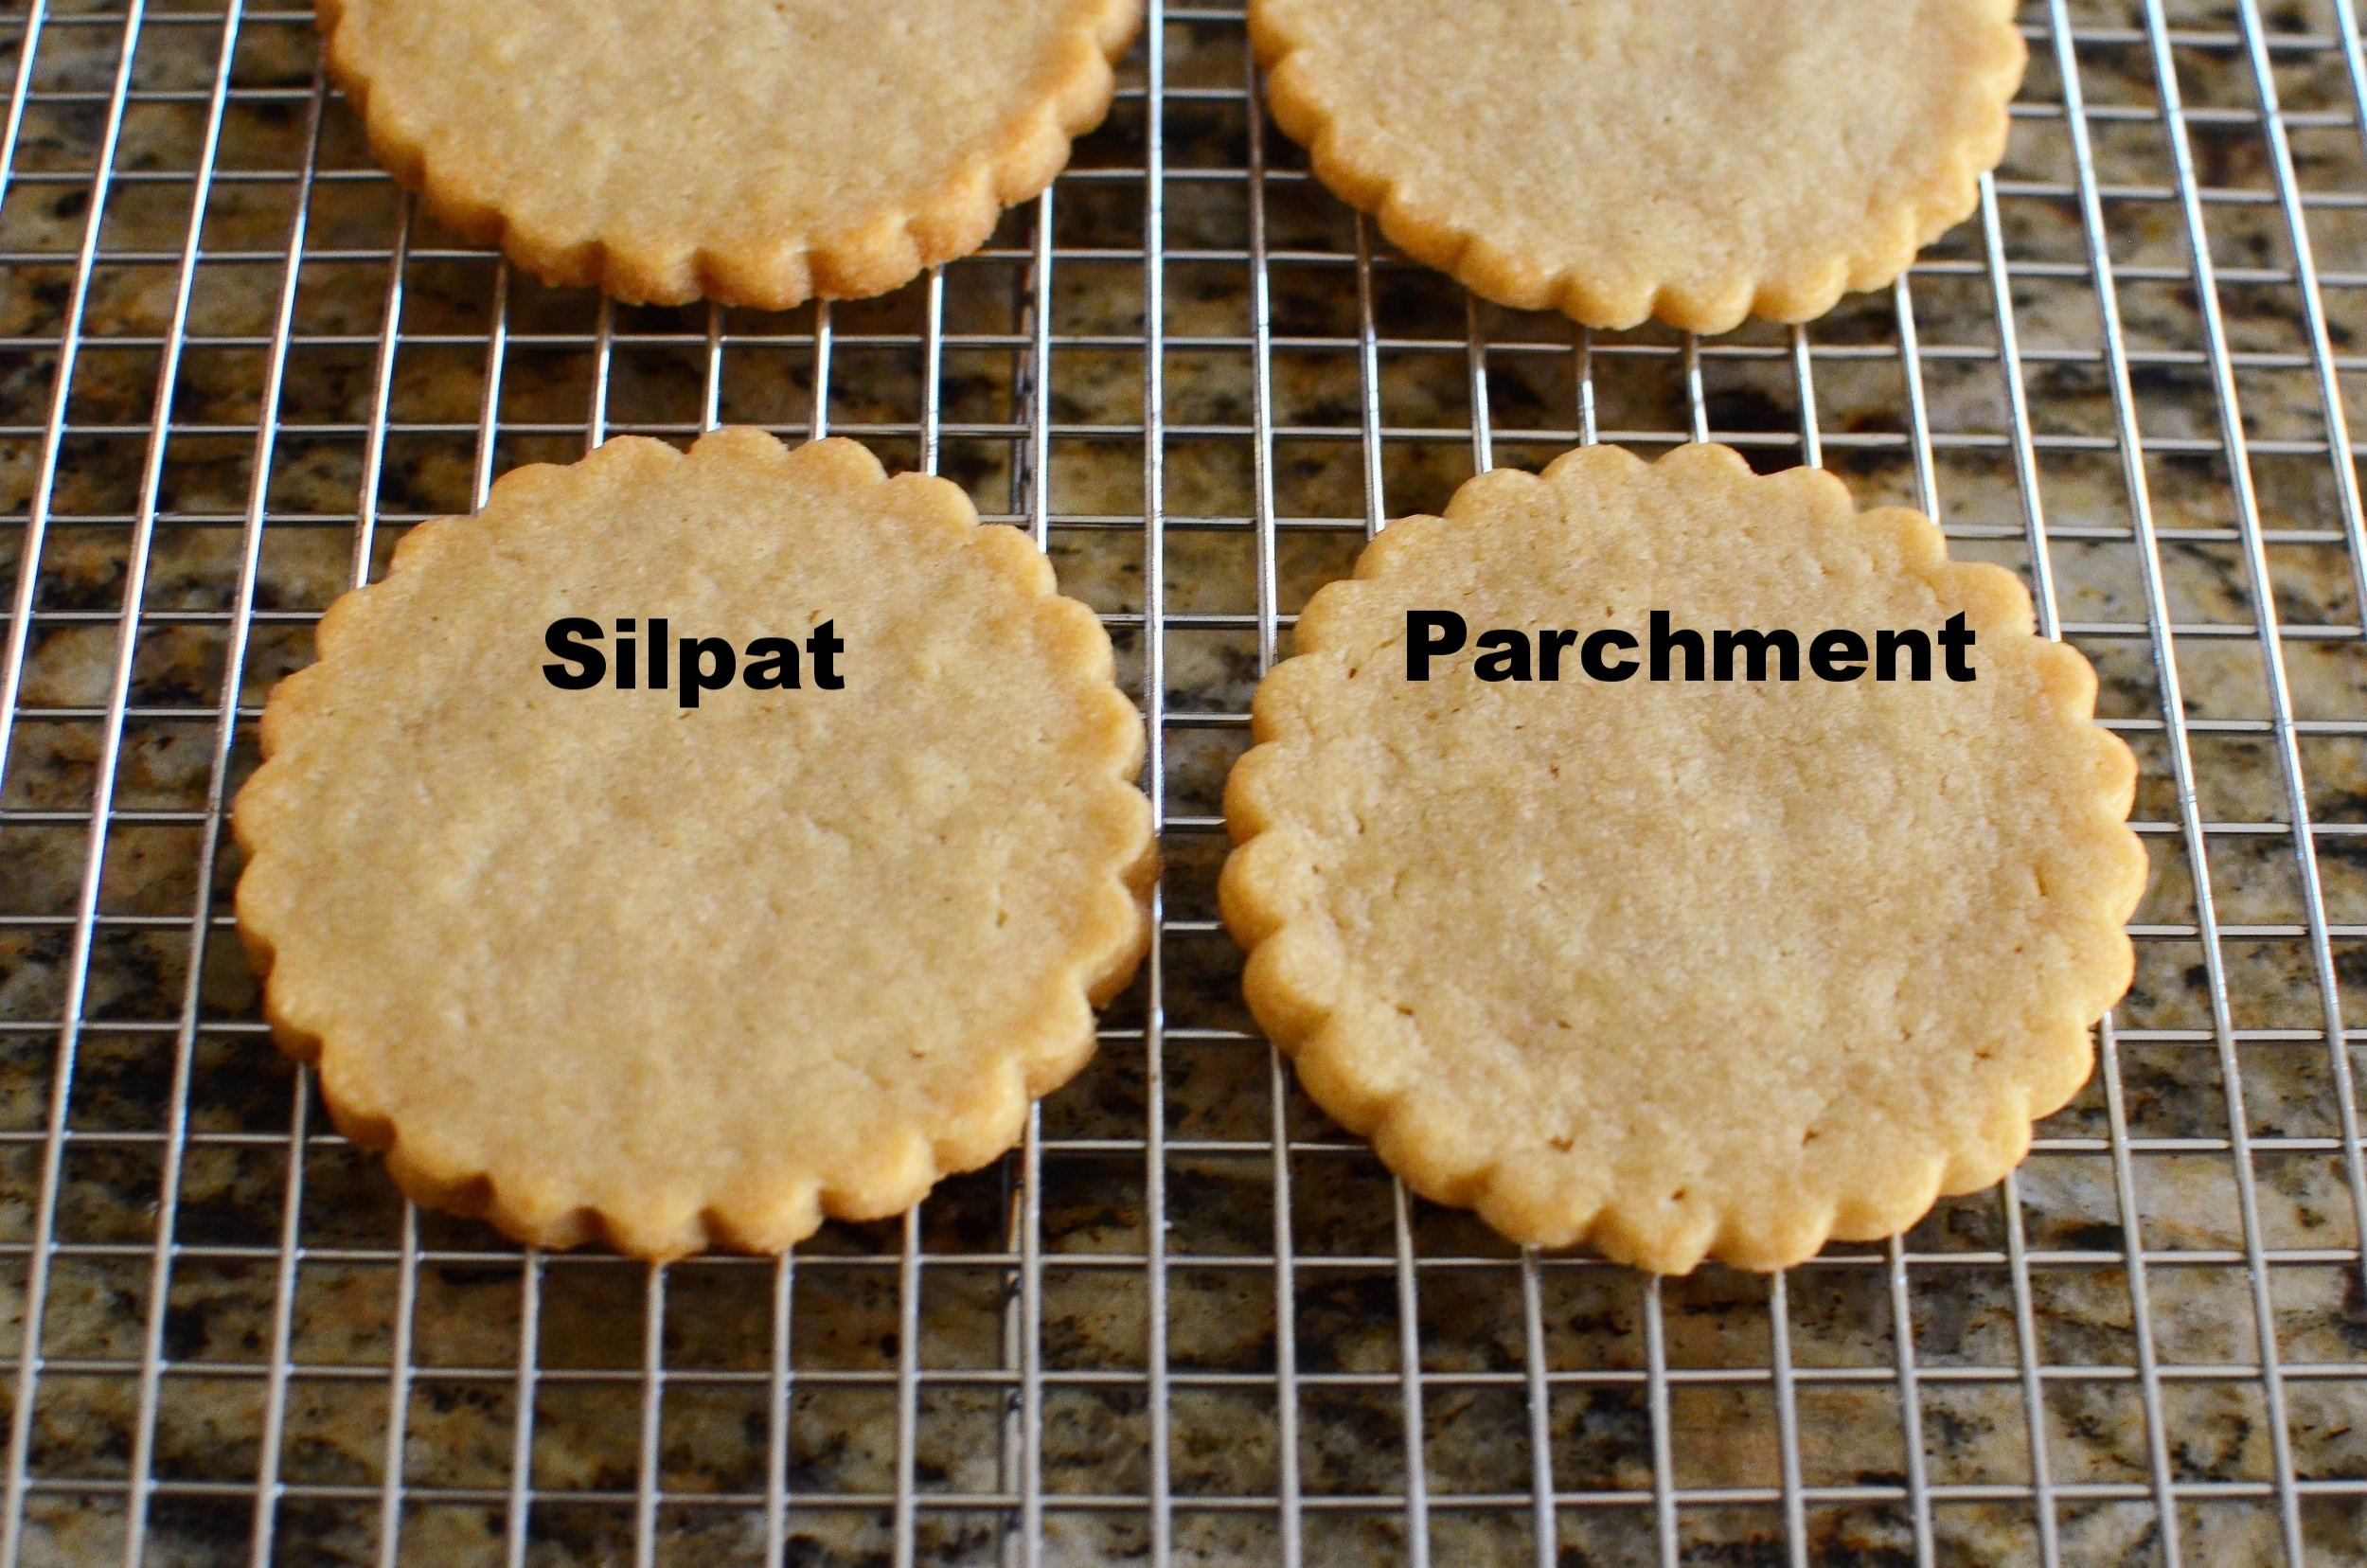 testing baking surfaces - which baking surface is best?